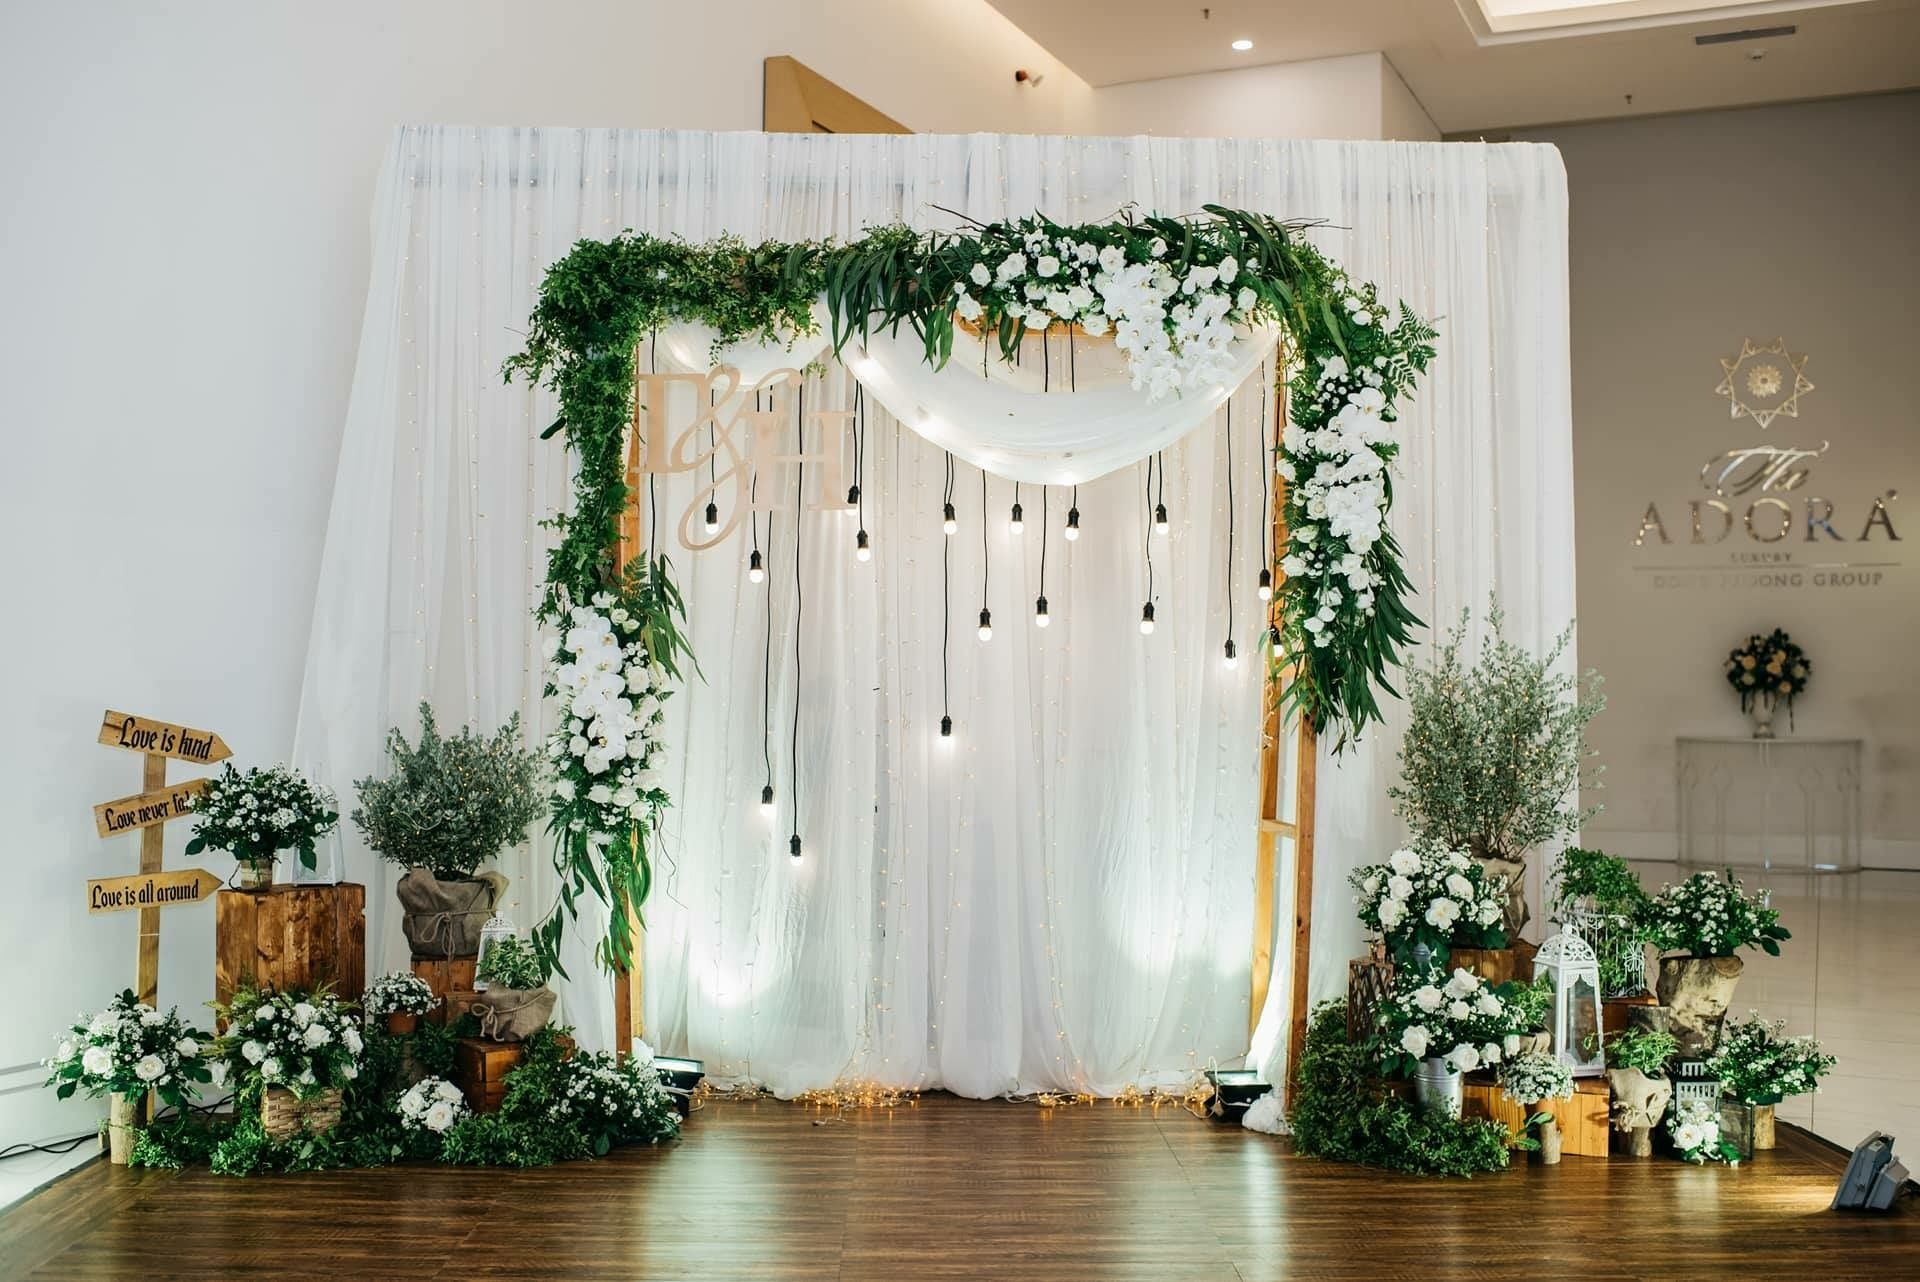 Wedding decorations background  Christmas background  Wedding package  Pinterest  Wedding